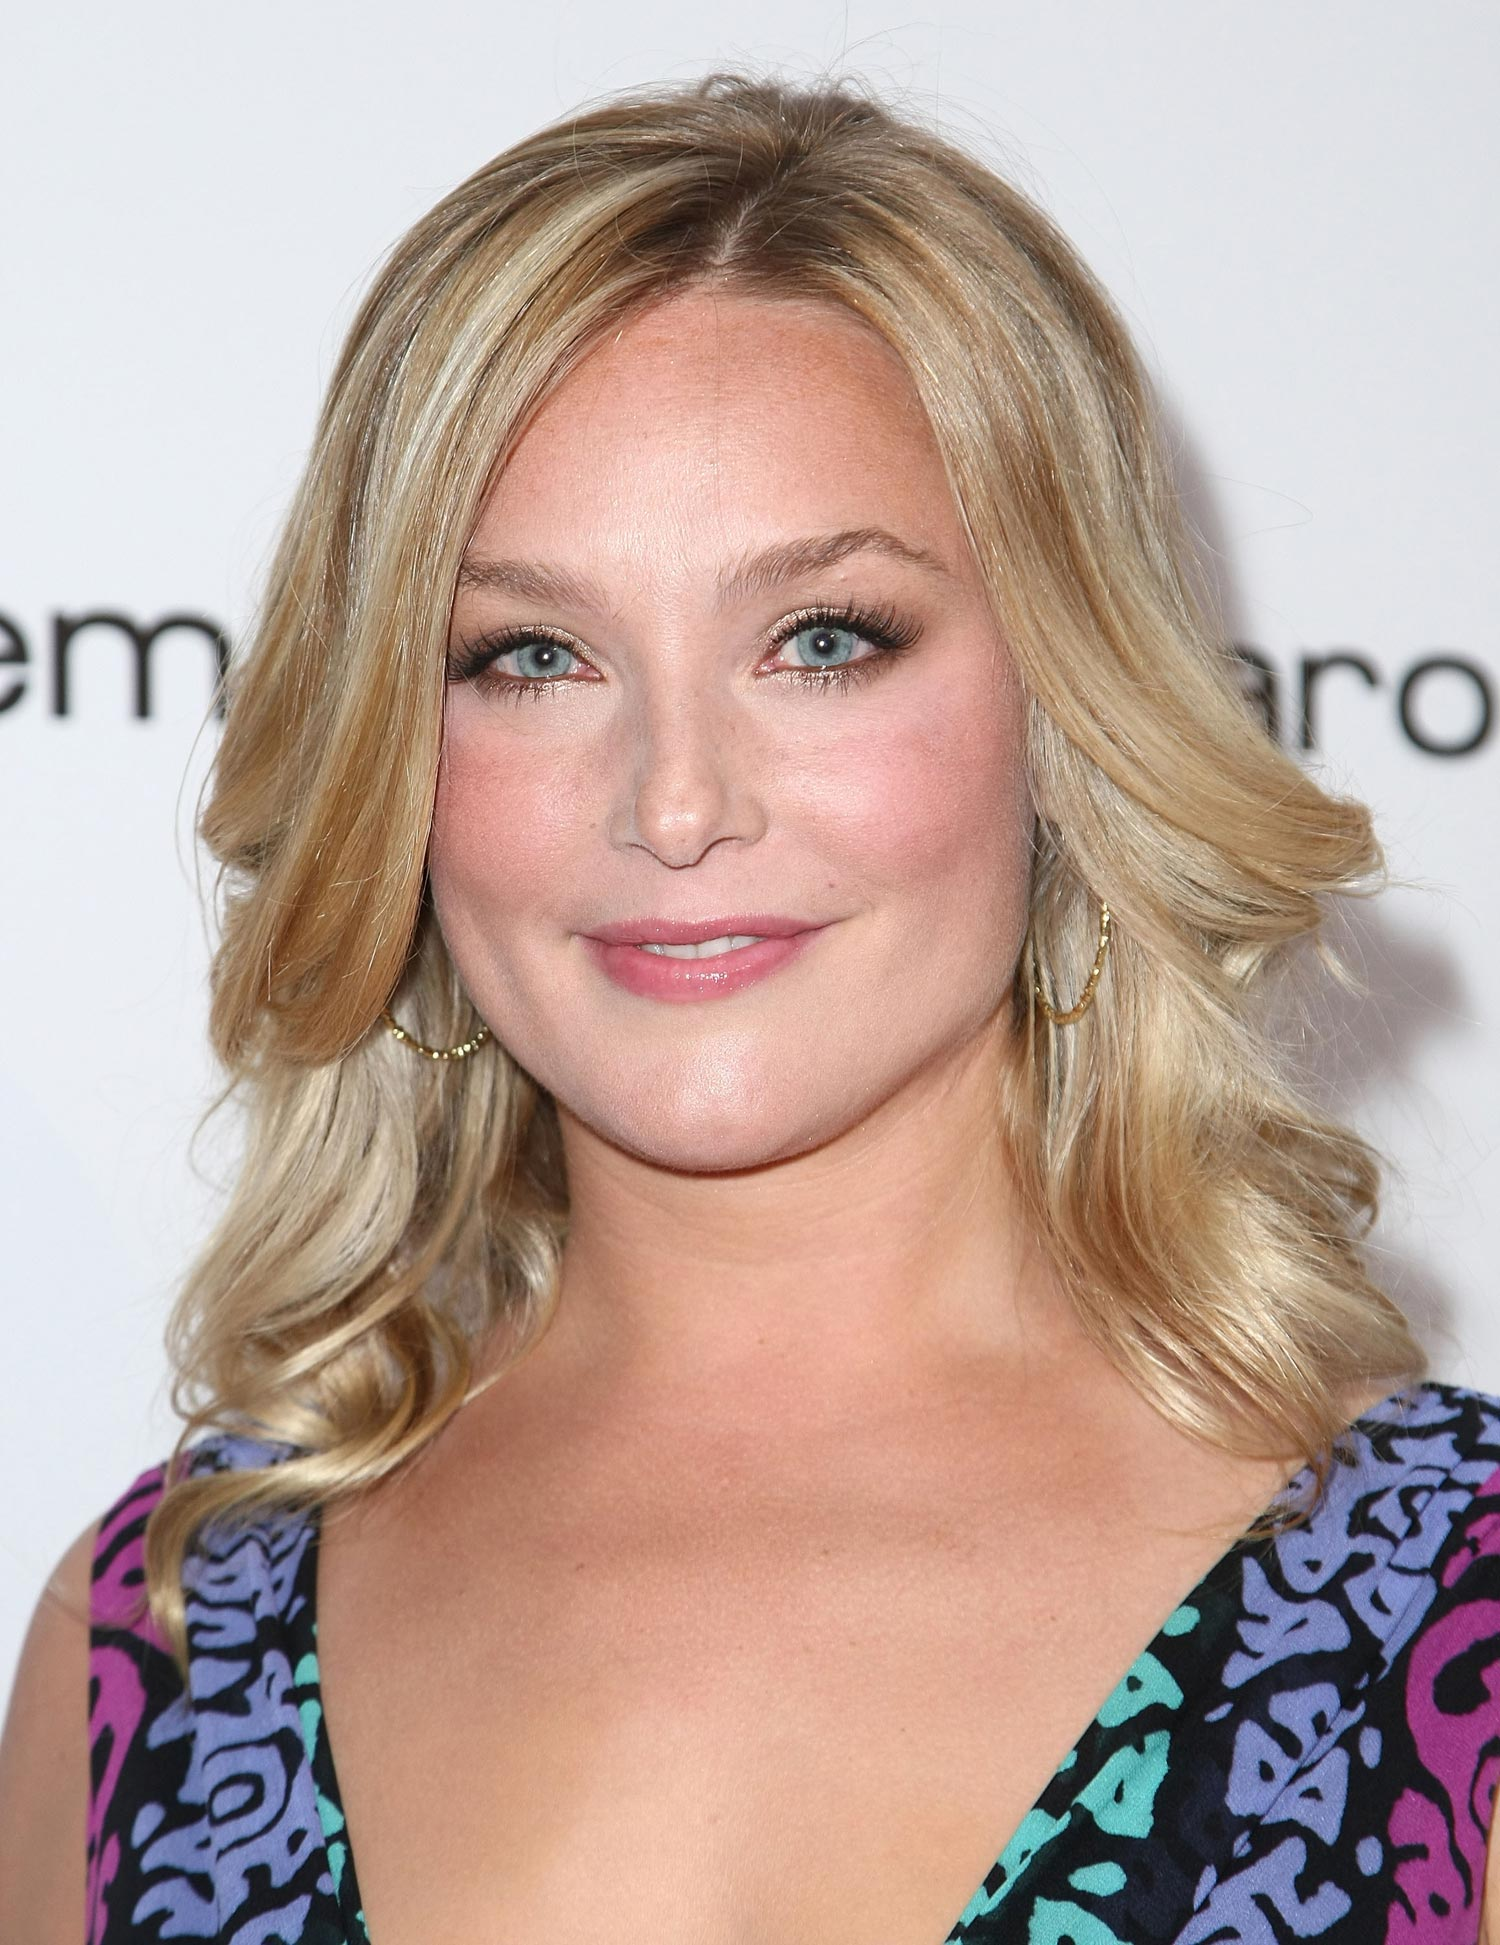 Elisabeth Rohm Images & Pictures - Becuo Malin Akerman Married